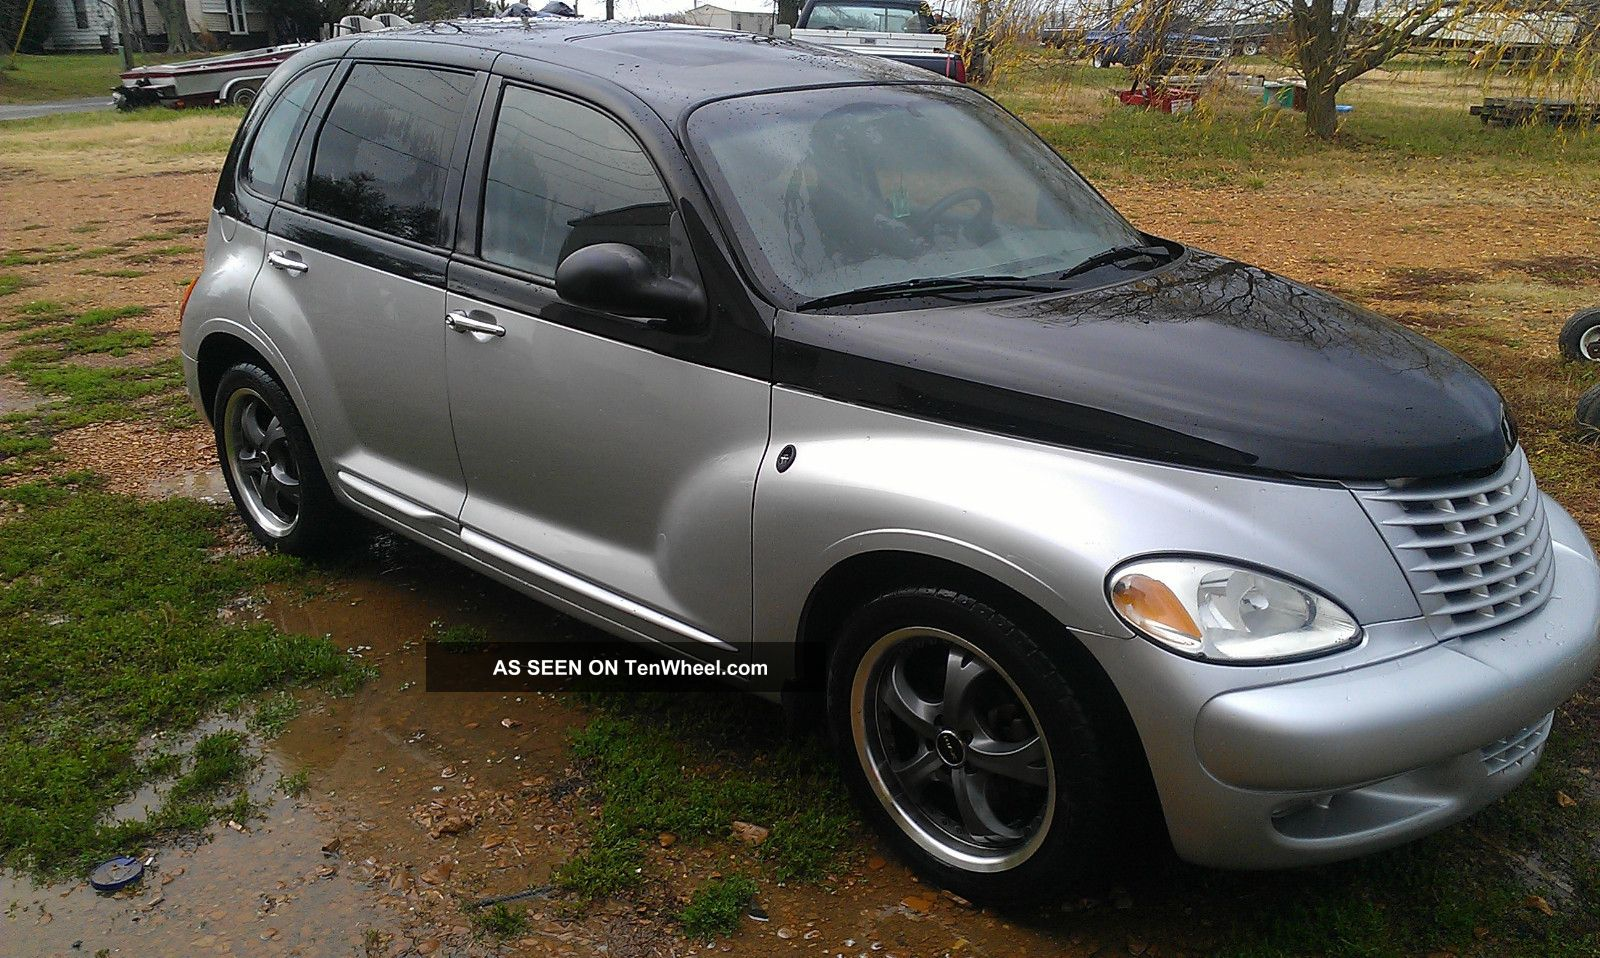 2003 chrysler pt cruiser gt wagon 4 door 2 4l. Black Bedroom Furniture Sets. Home Design Ideas